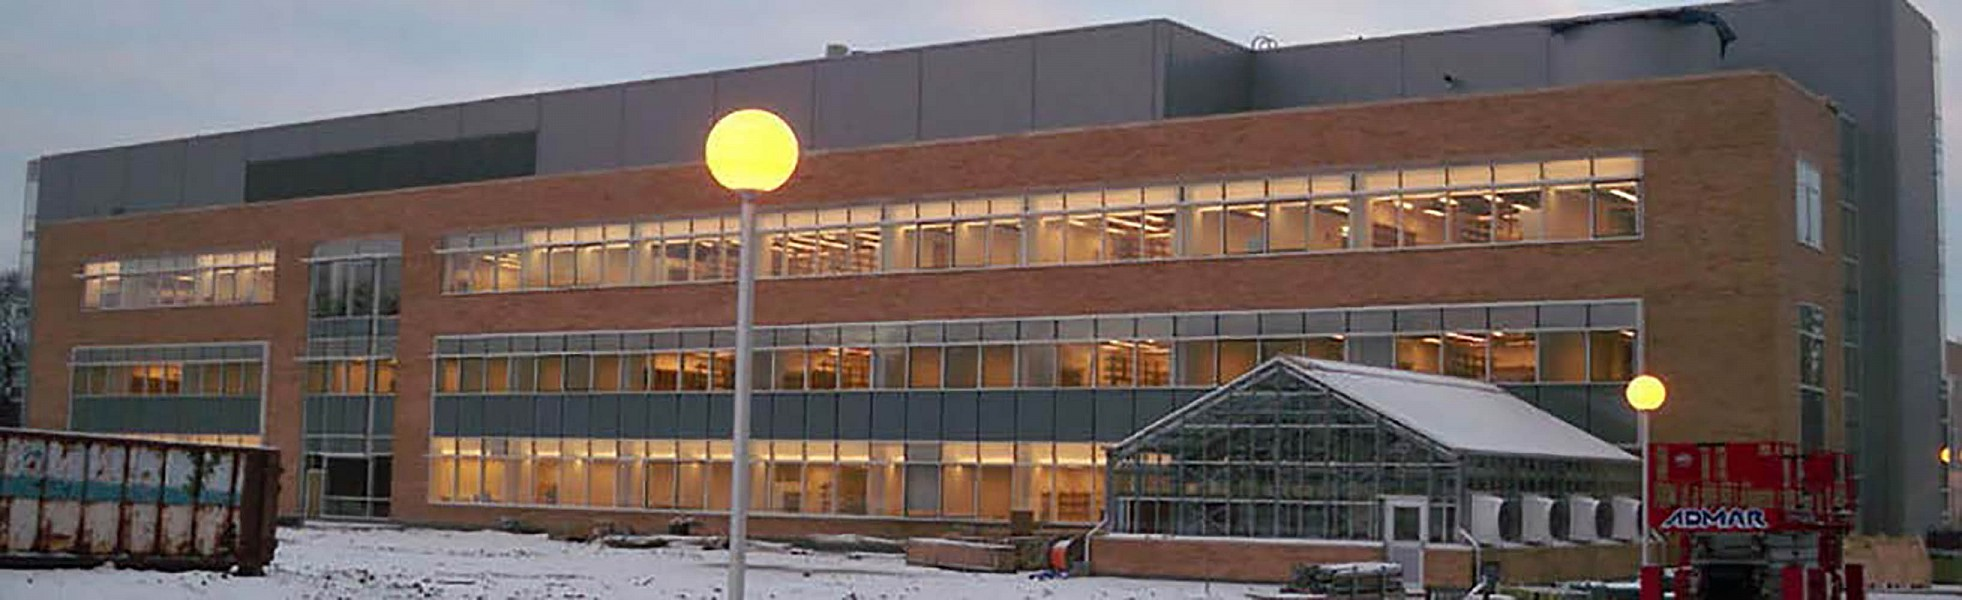 SUNY Fredonia Science and Technology Center